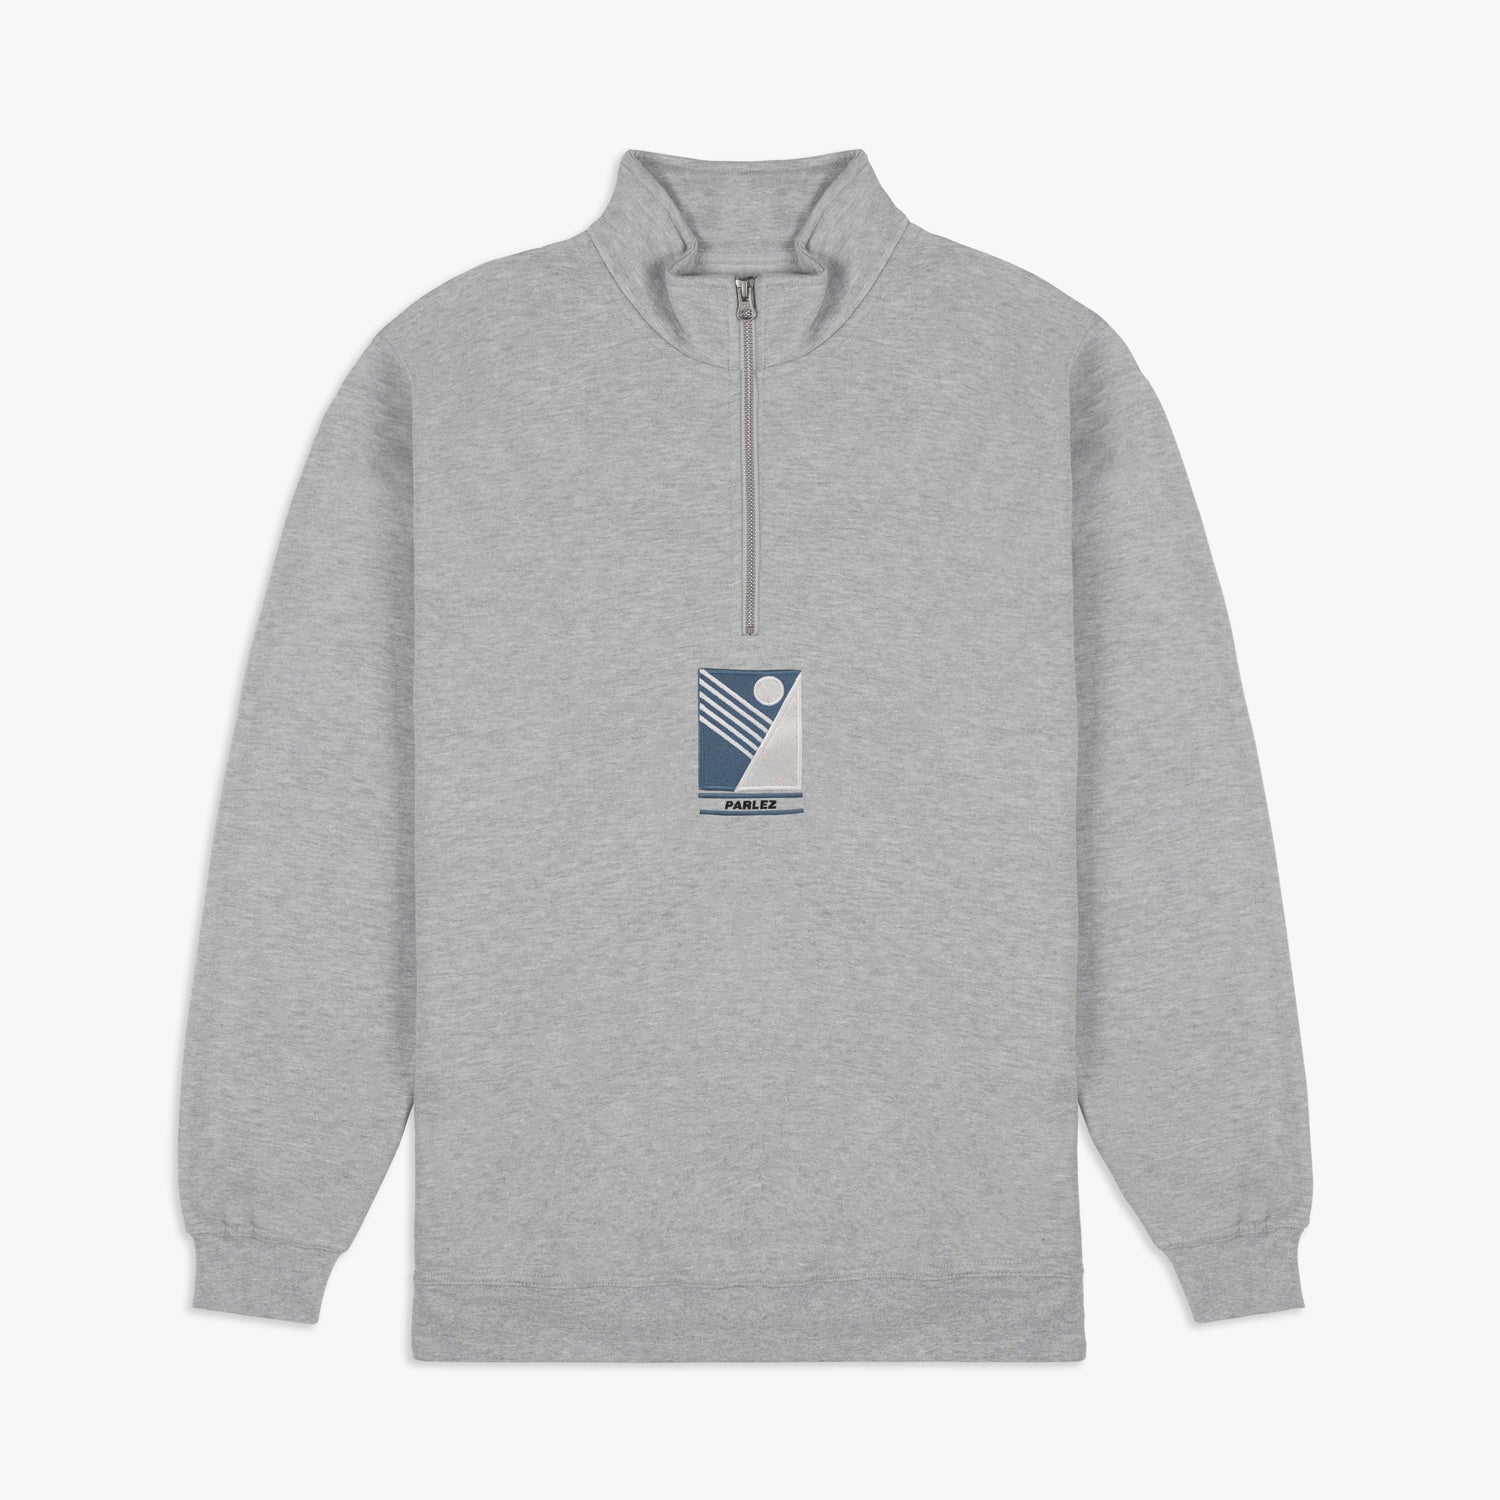 Parlez x Jingo 1/4 Zip - Heather